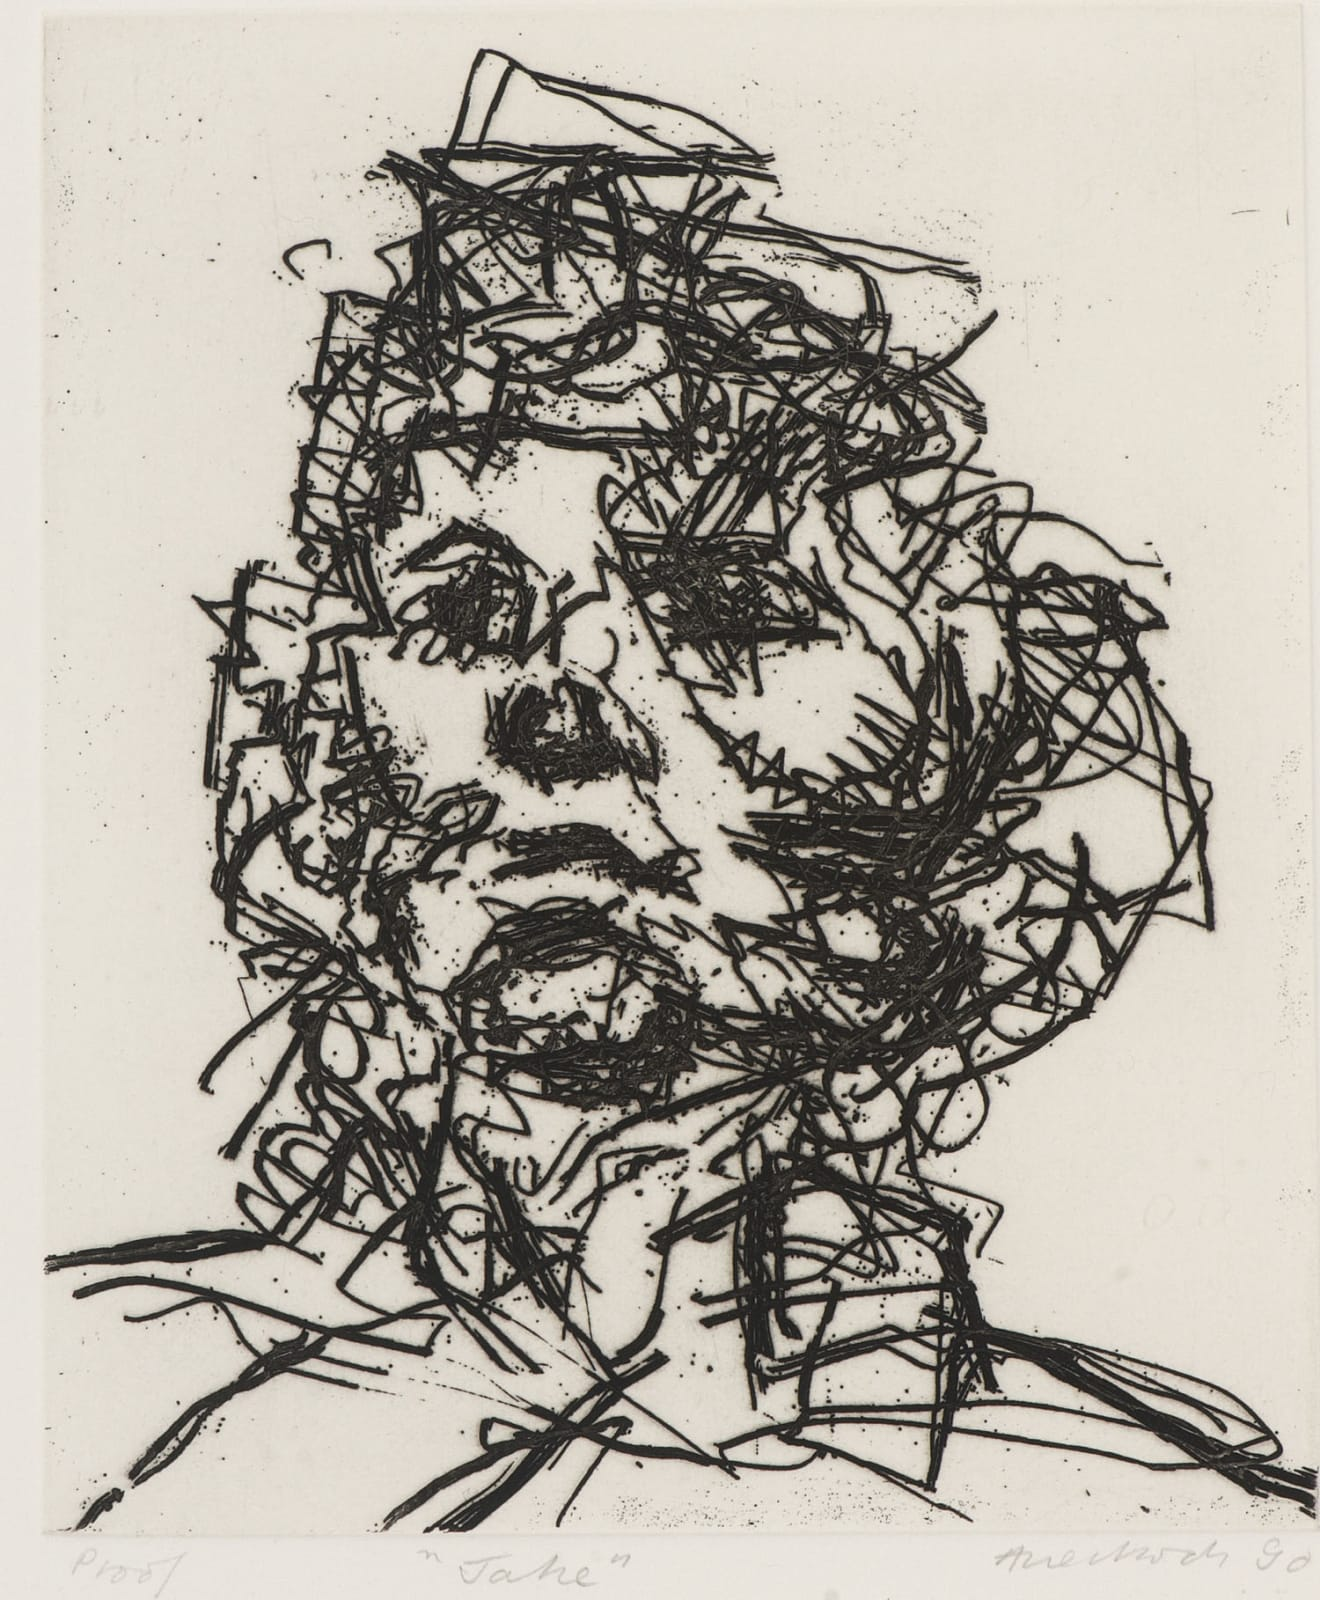 Frank Auerbach (1931-) Jake, Part of Seven Portarits 1990 Etching, printed on Somerset white paper, artist's proof outside the published edition of 50 20 x 16.5 cm Ben Uri Collection © Frank Auerbach, courtesy Marlborough Fine Art To see and discover more about this artist click here